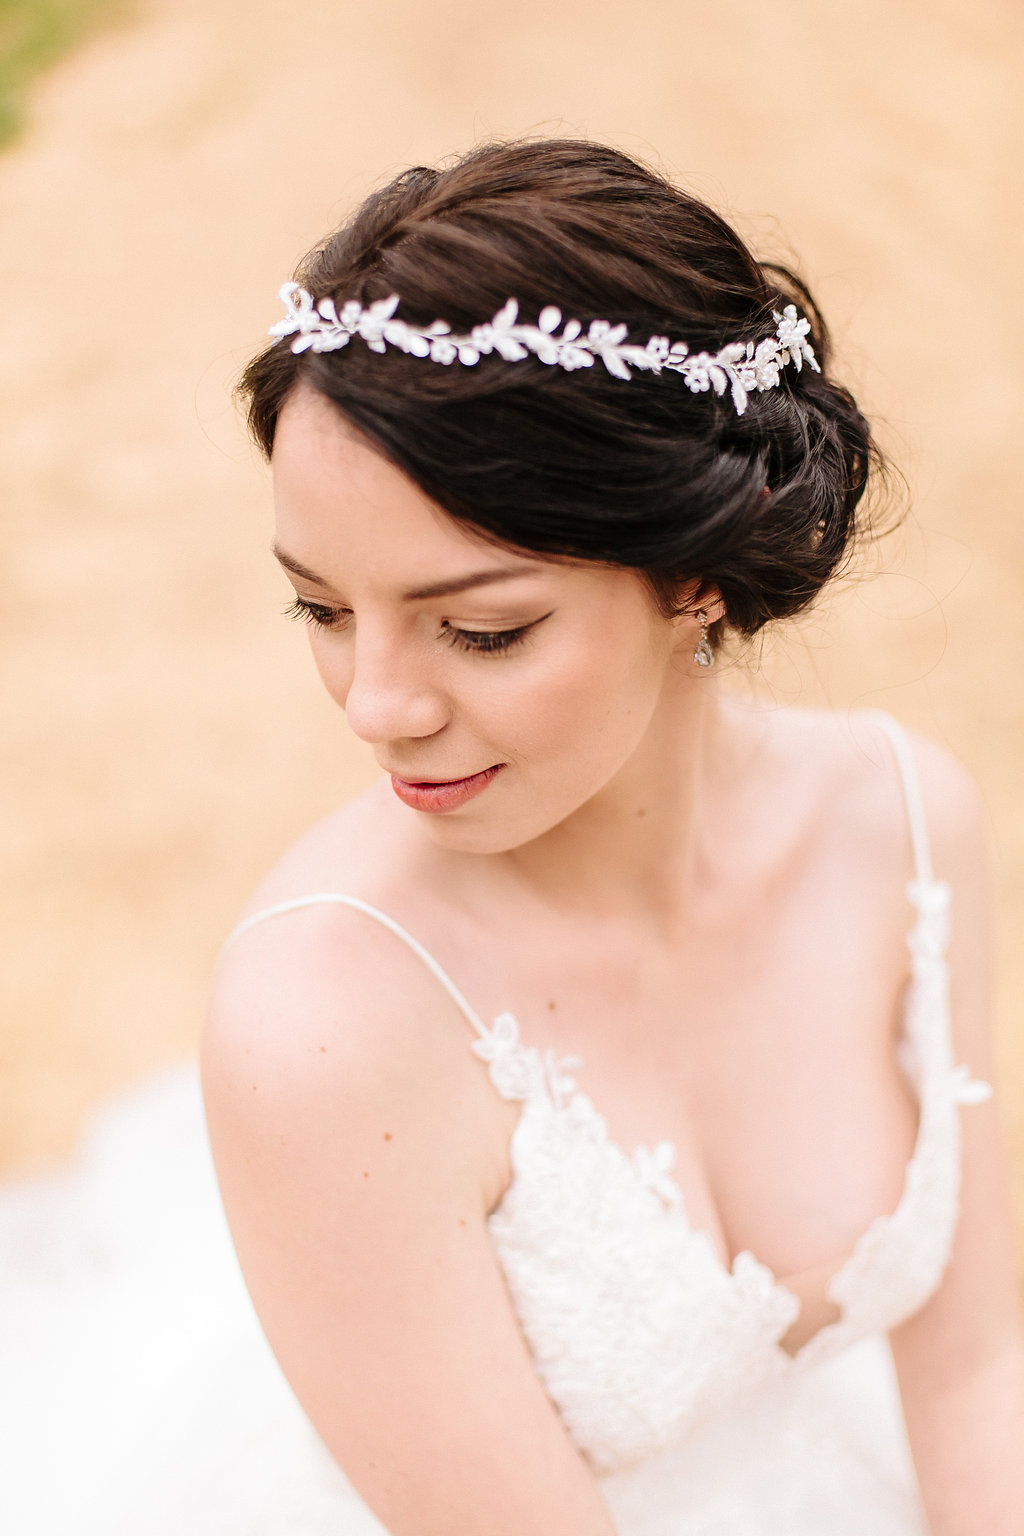 Leaf Bridal Headpiece | Image: Nelani Van Zyl